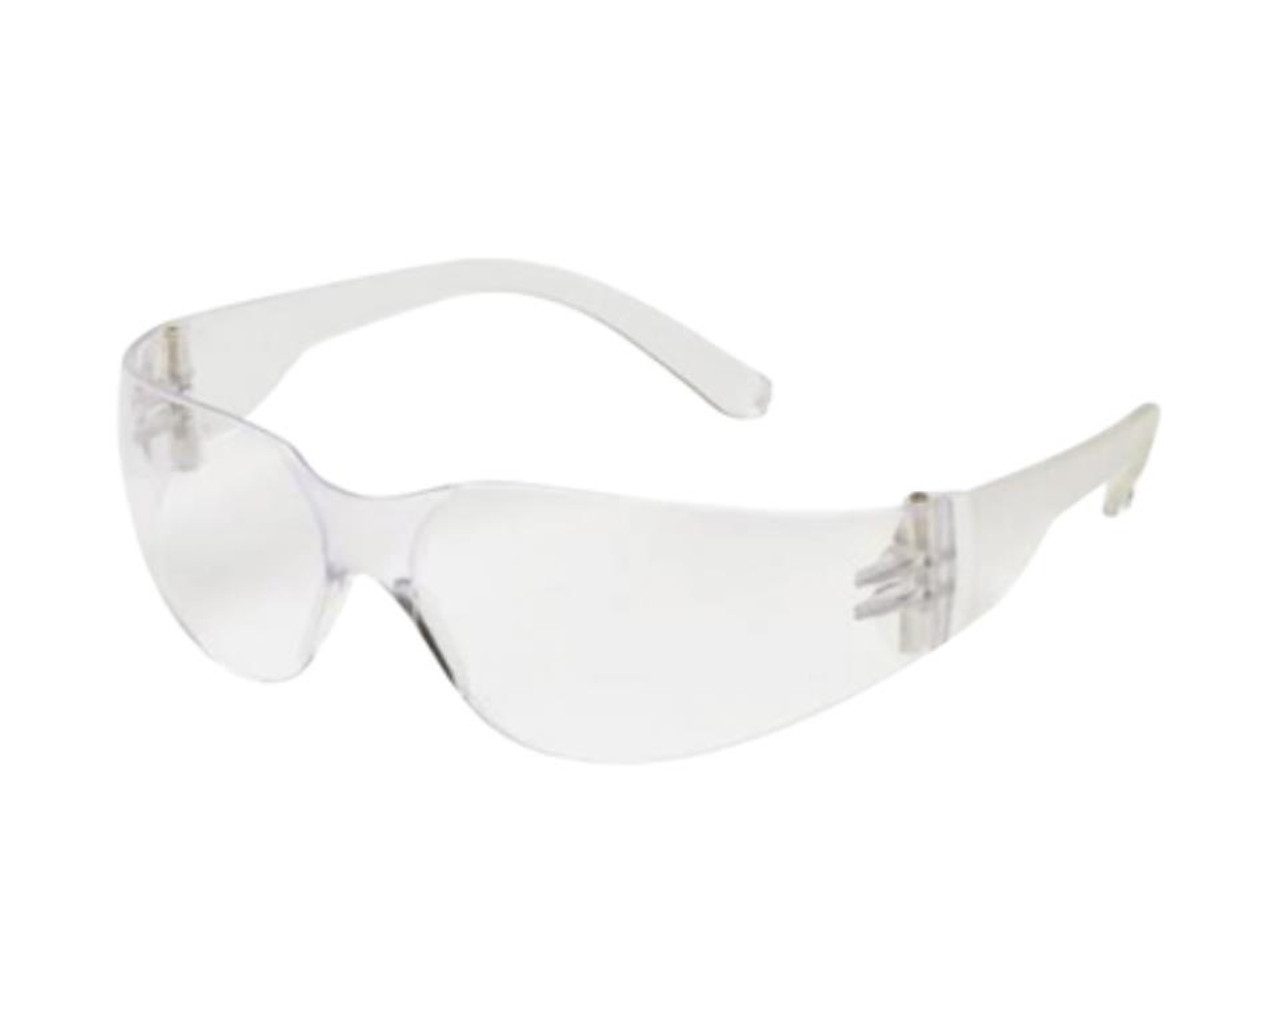 Pyramex Glasses Mini Intruder Shooting Glasses Clear Frame Clear